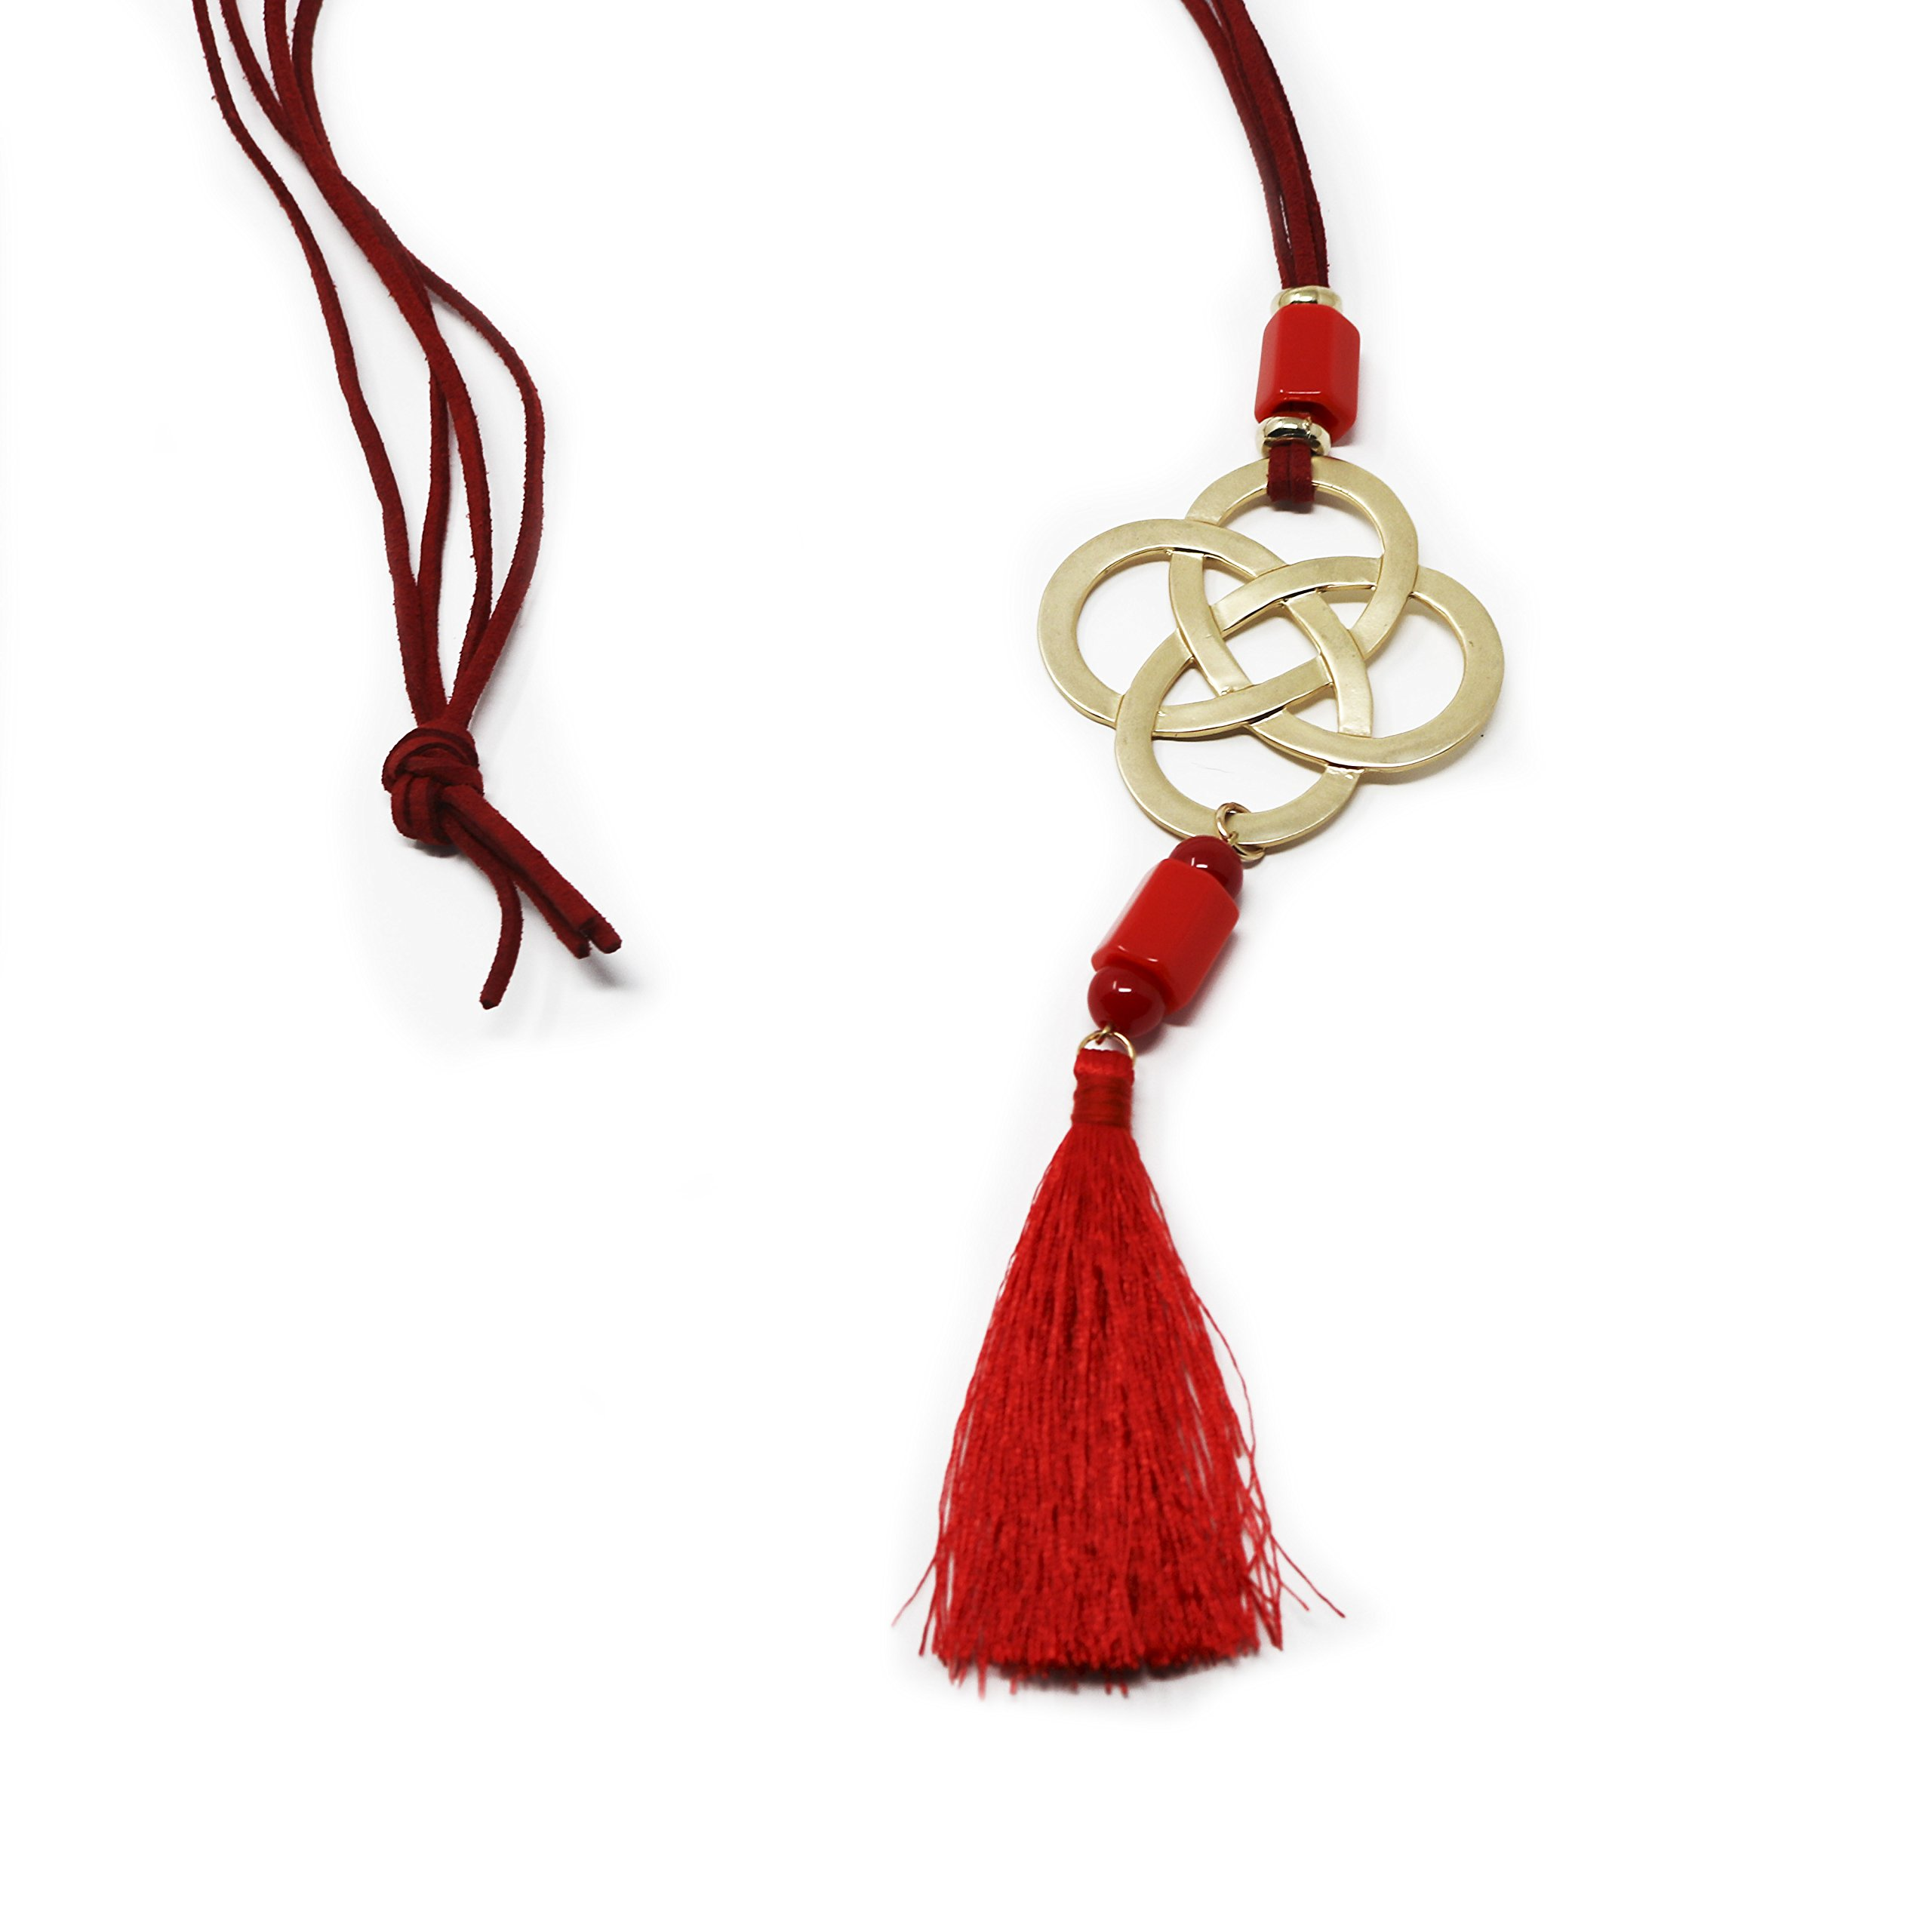 The Navy Knot Red Corded Tassel Necklace with Bold Quatrefoil Pendant - Red Necklace Summer Statement Gold Trendy Long Tassels